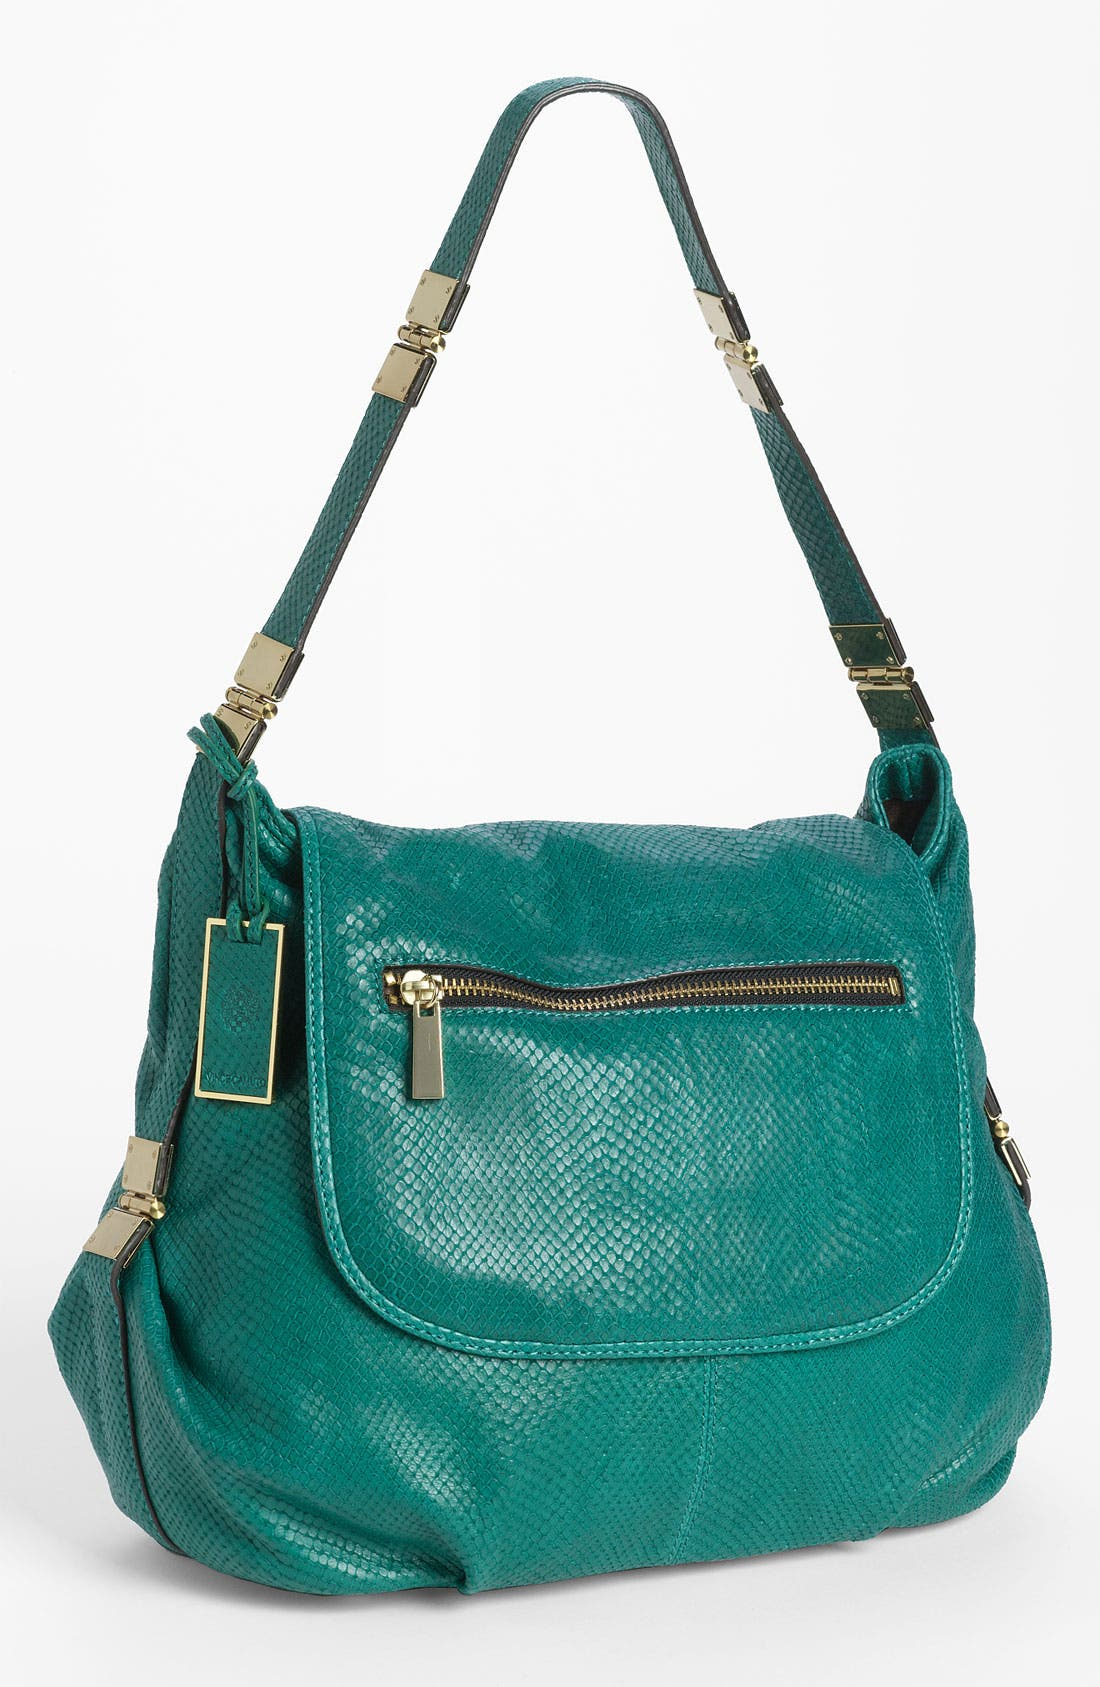 Alternate Image 1 Selected - Vince Camuto 'Alexa' Hobo